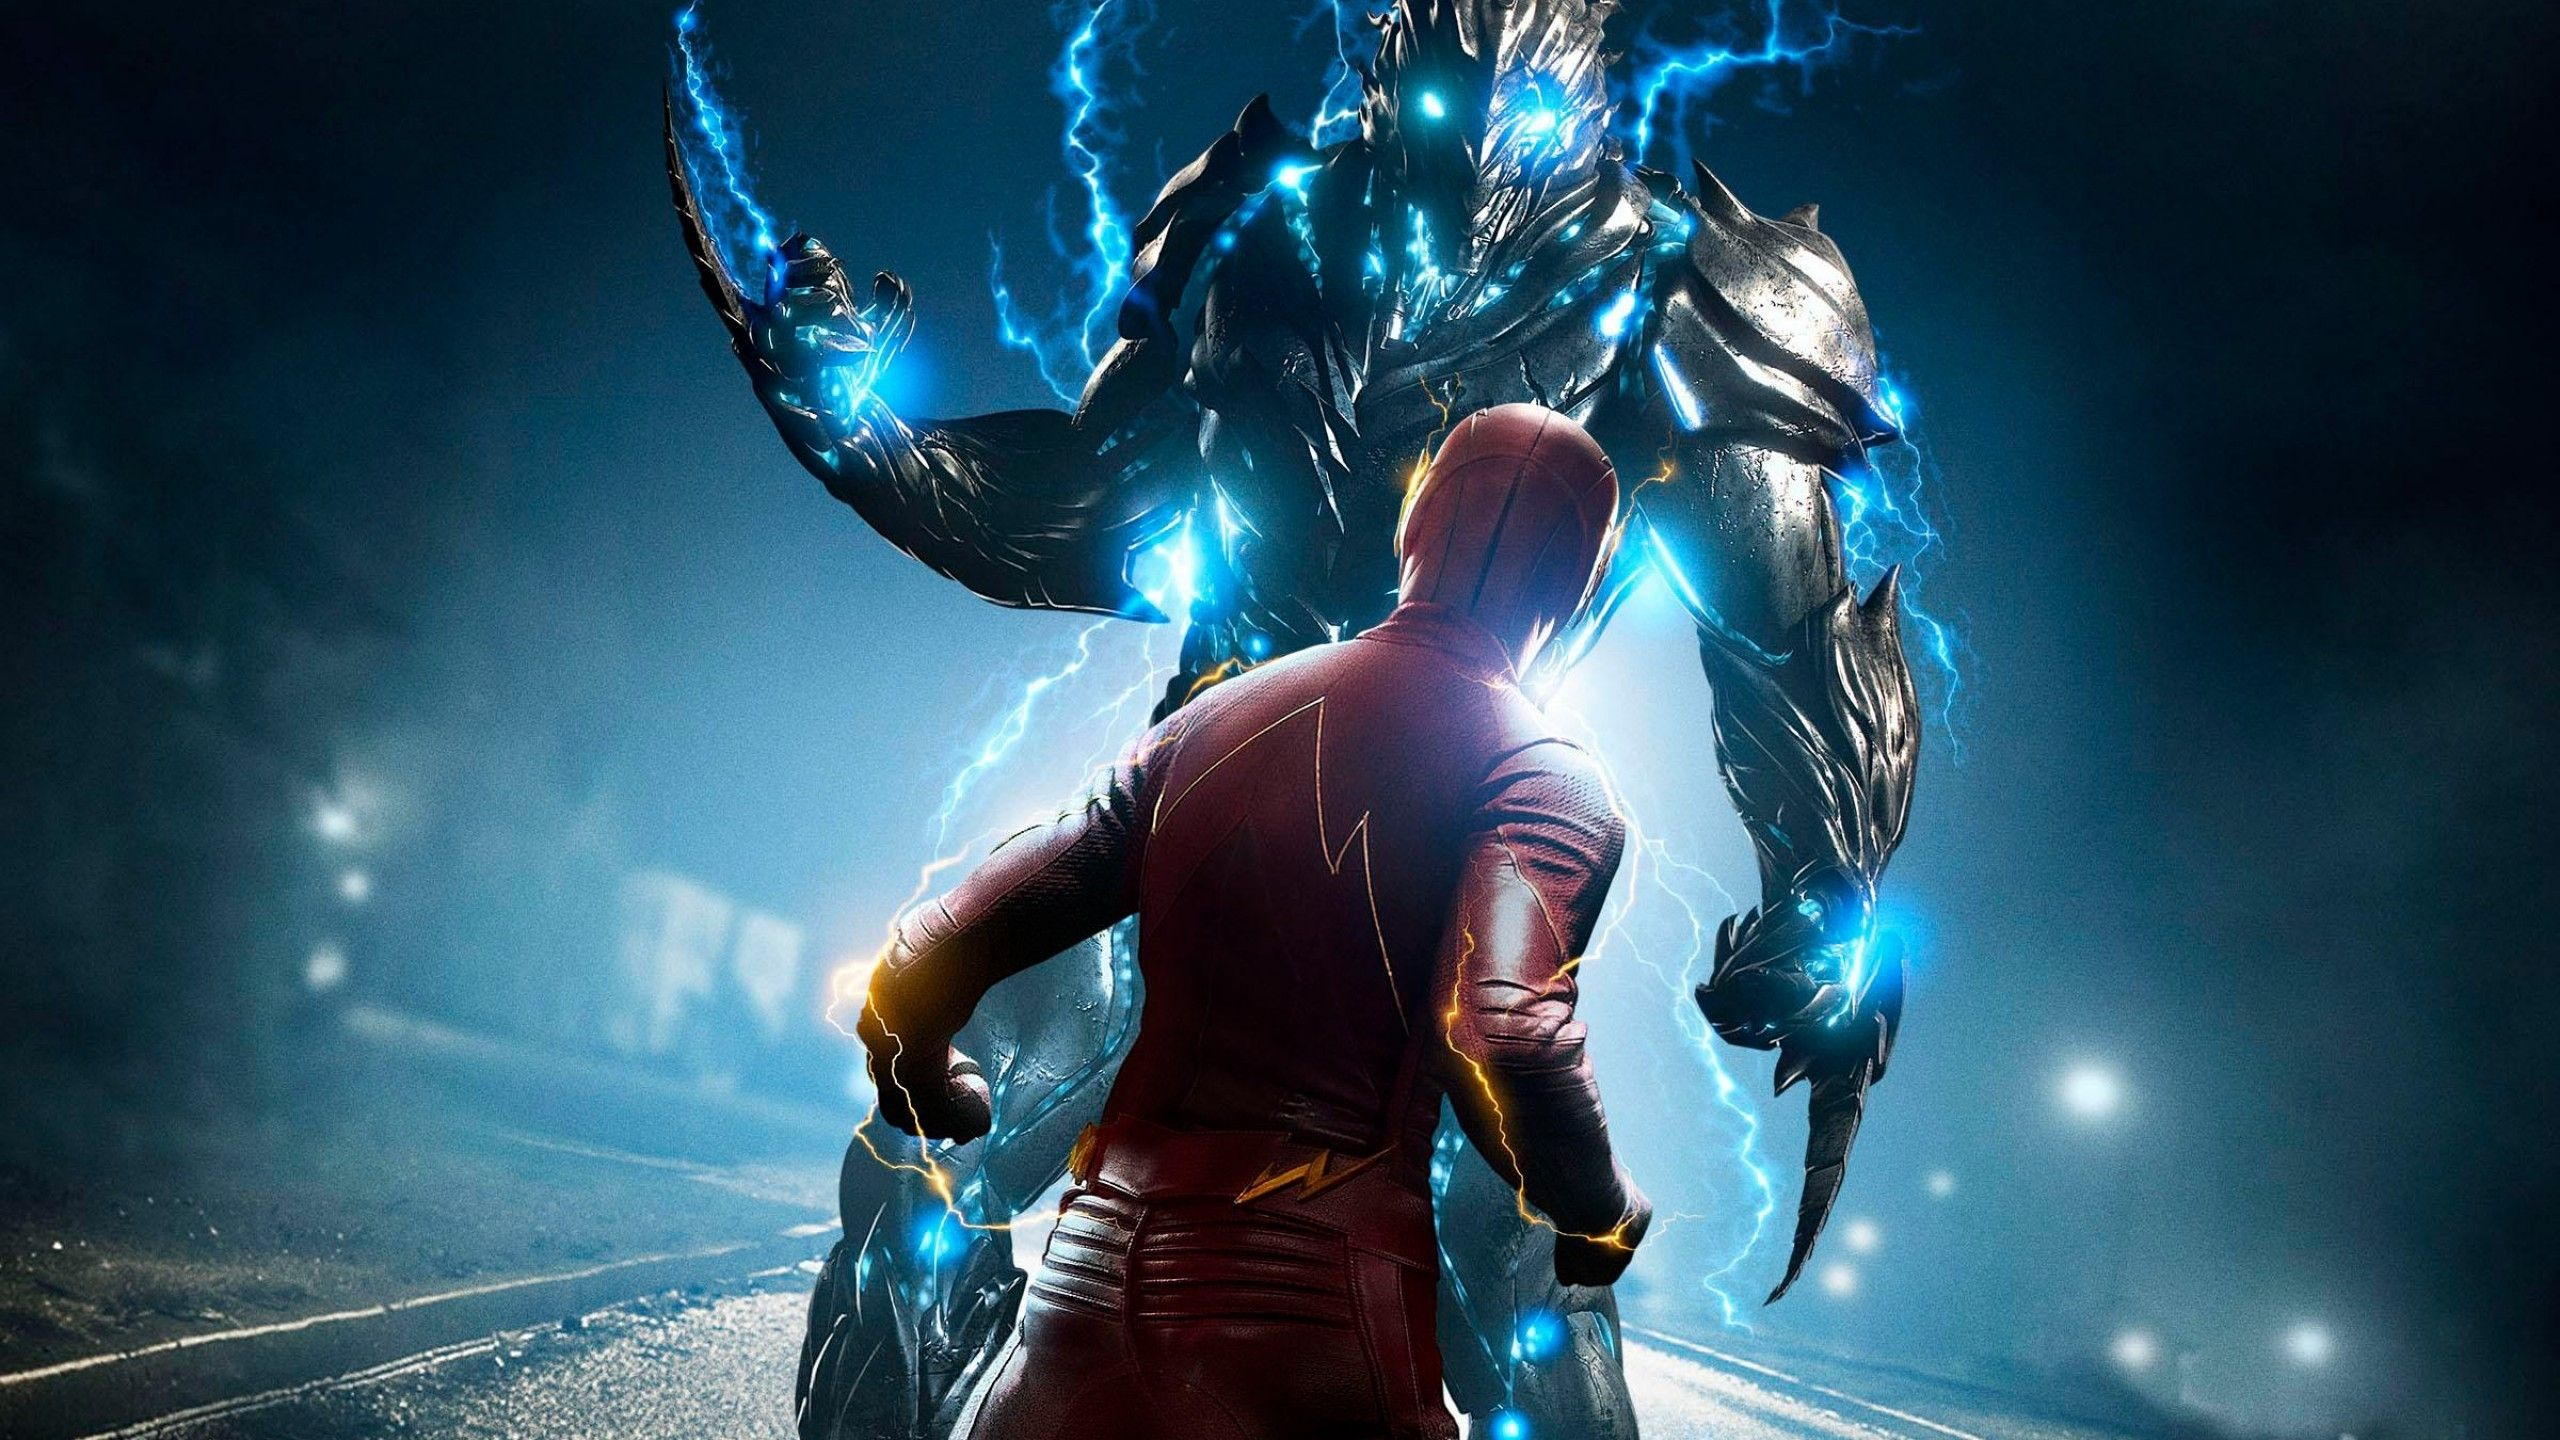 10 Best The Flash 4K Wallpaper FULL HD 1080p For PC